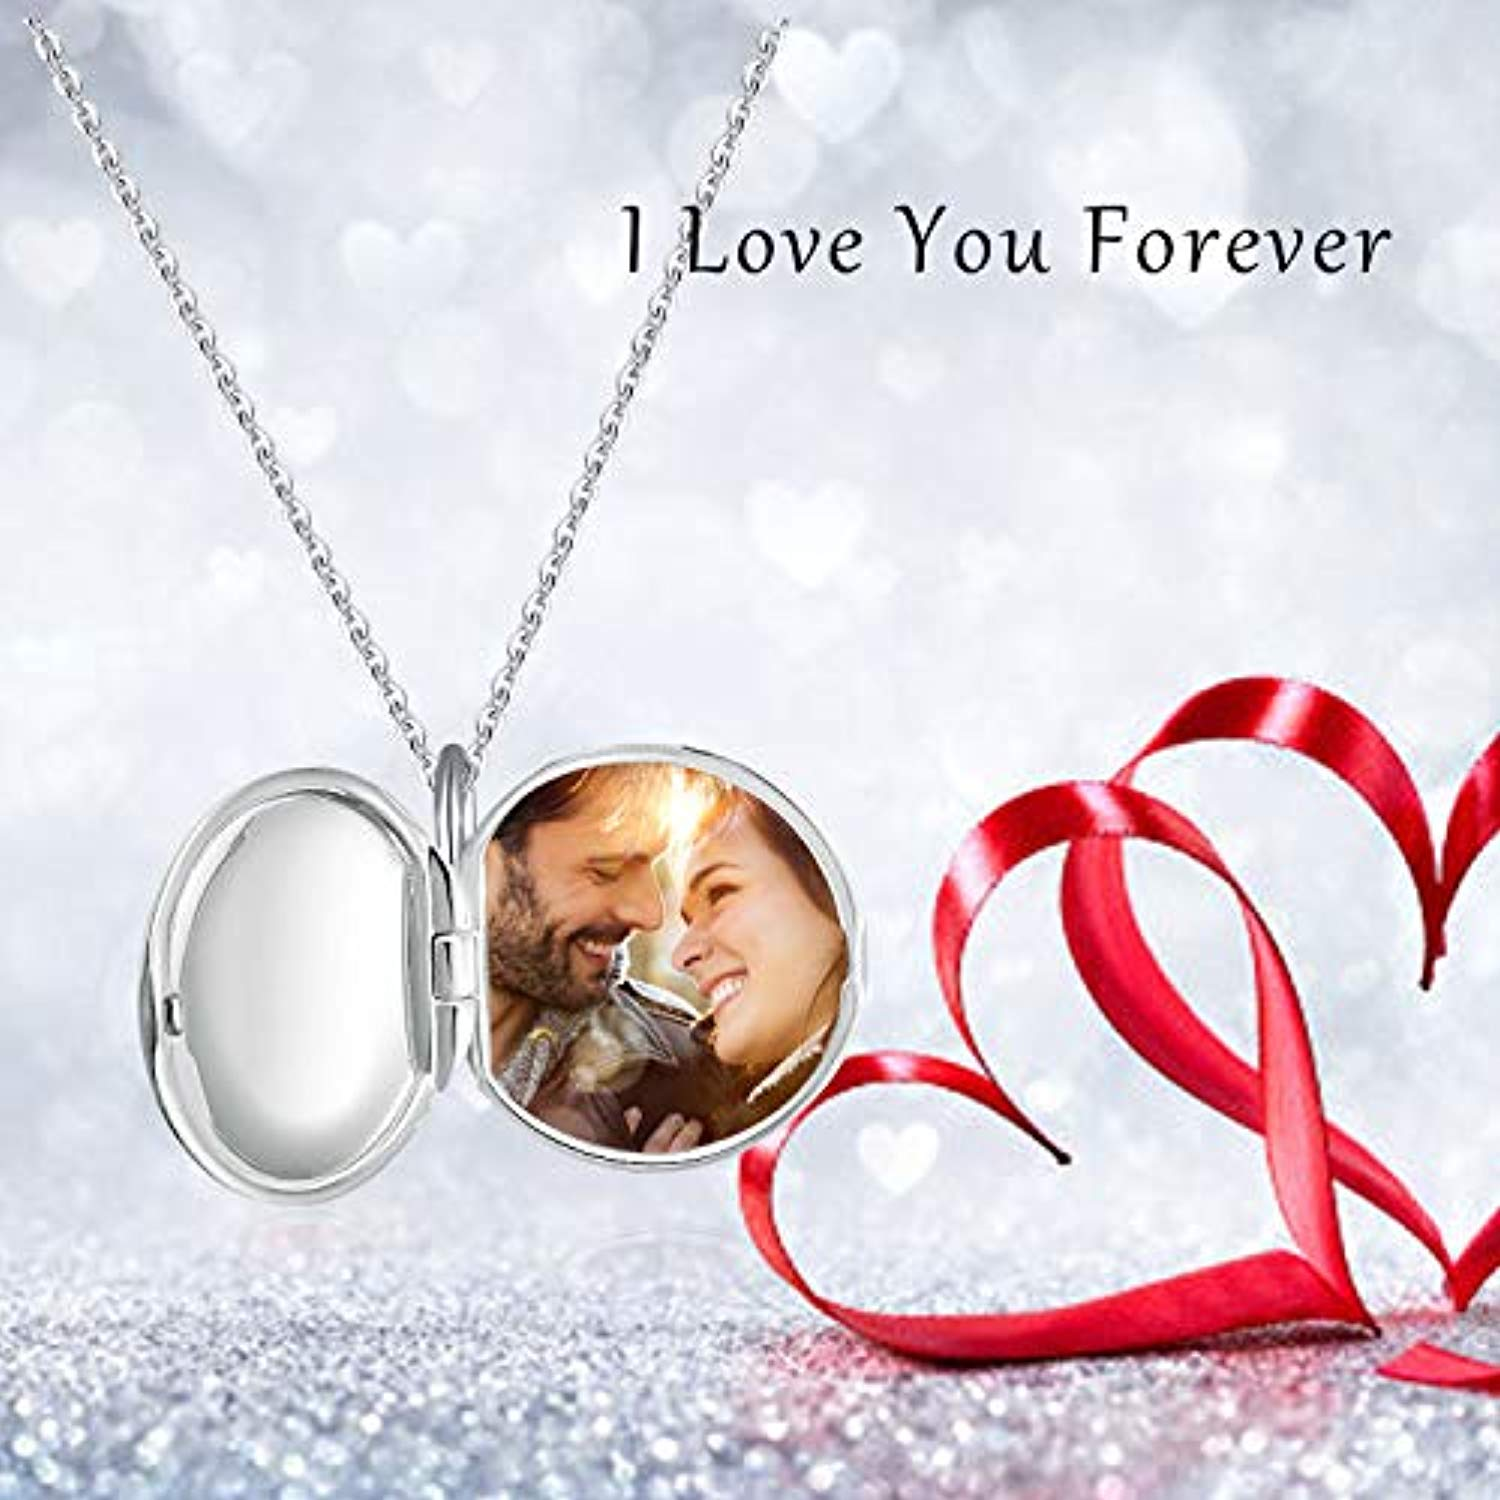 Locket Necklace That Holds Pictures Guardian Angel 925 Sterling Silver Photo Heart Lockets Necklace for Women.